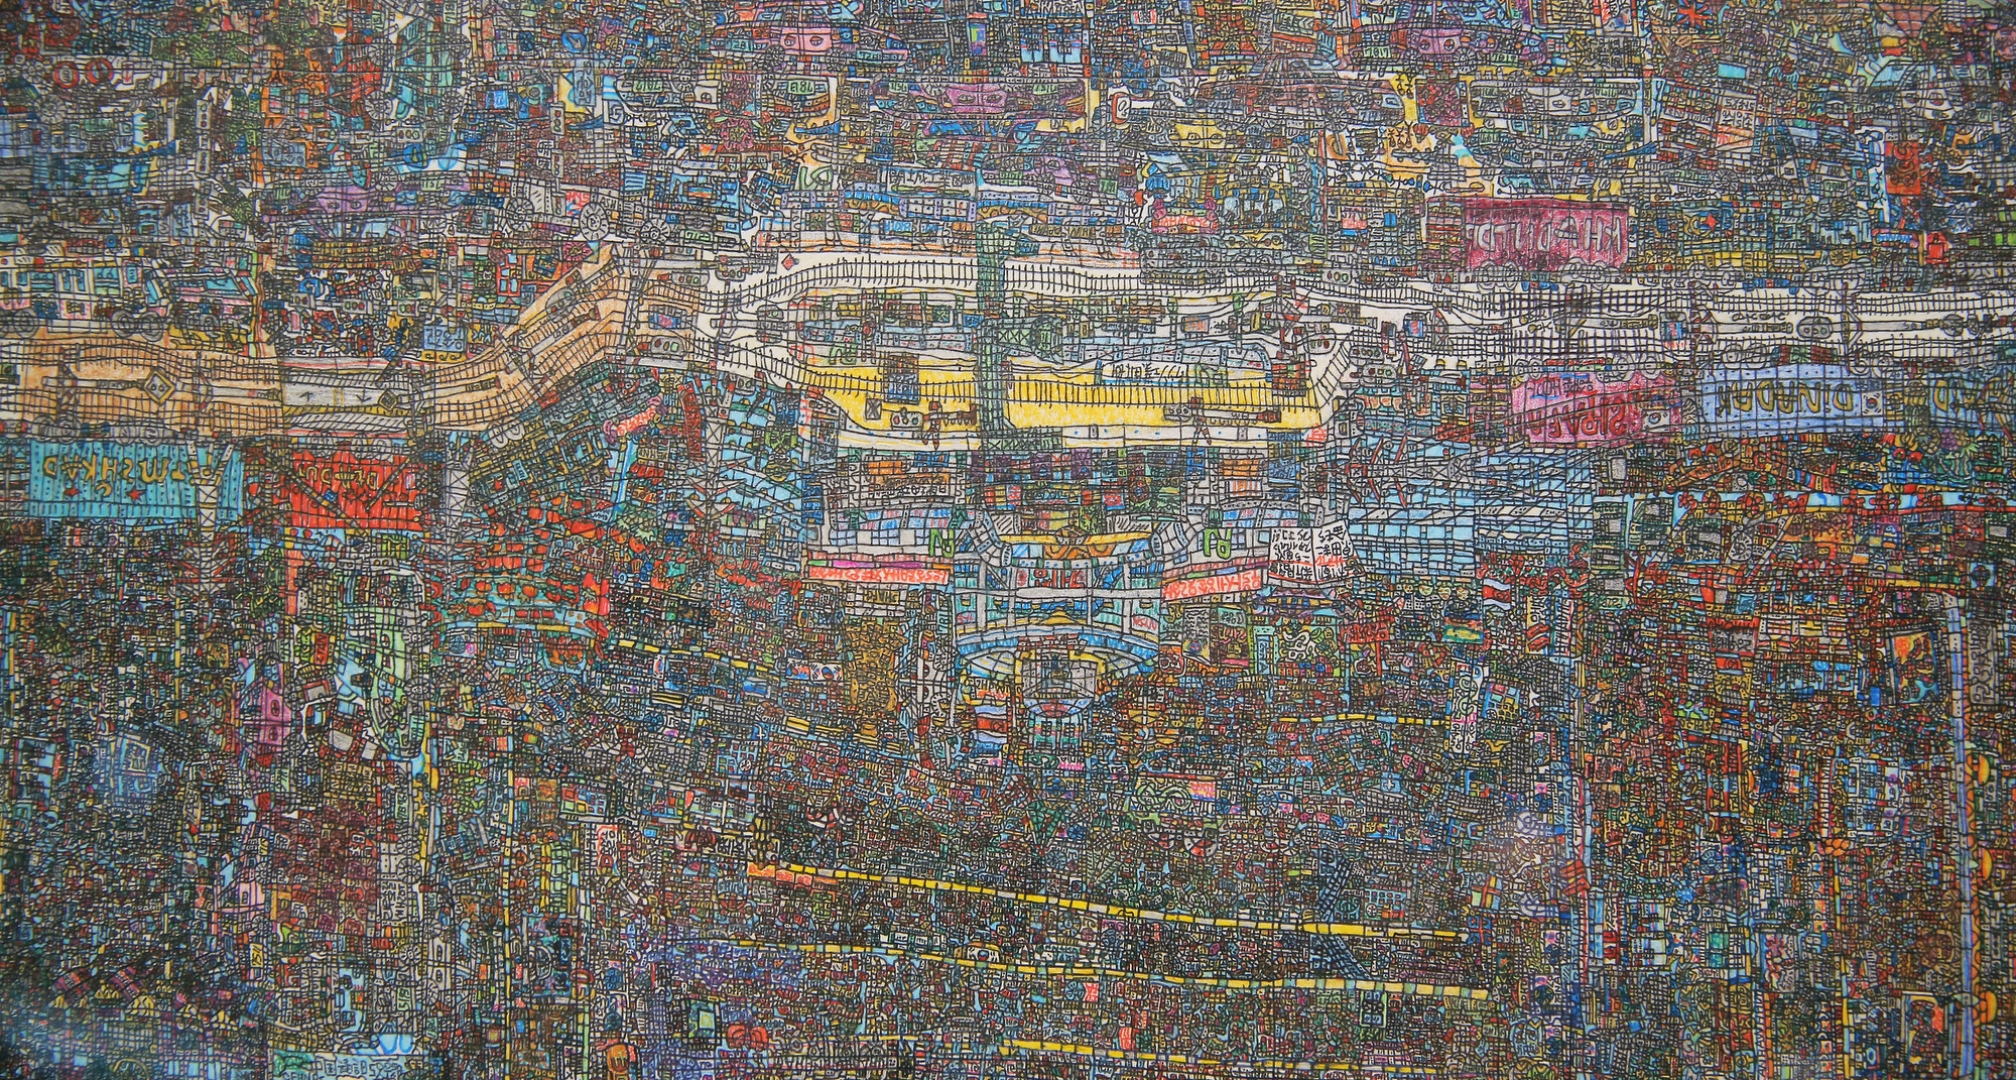 Close up of a 140cm by 30cm piece titled 'Kaesong Industrial Park'. Kaesong is a joint inter-Korean economic project located just across the demilitarised zone in North Korea.